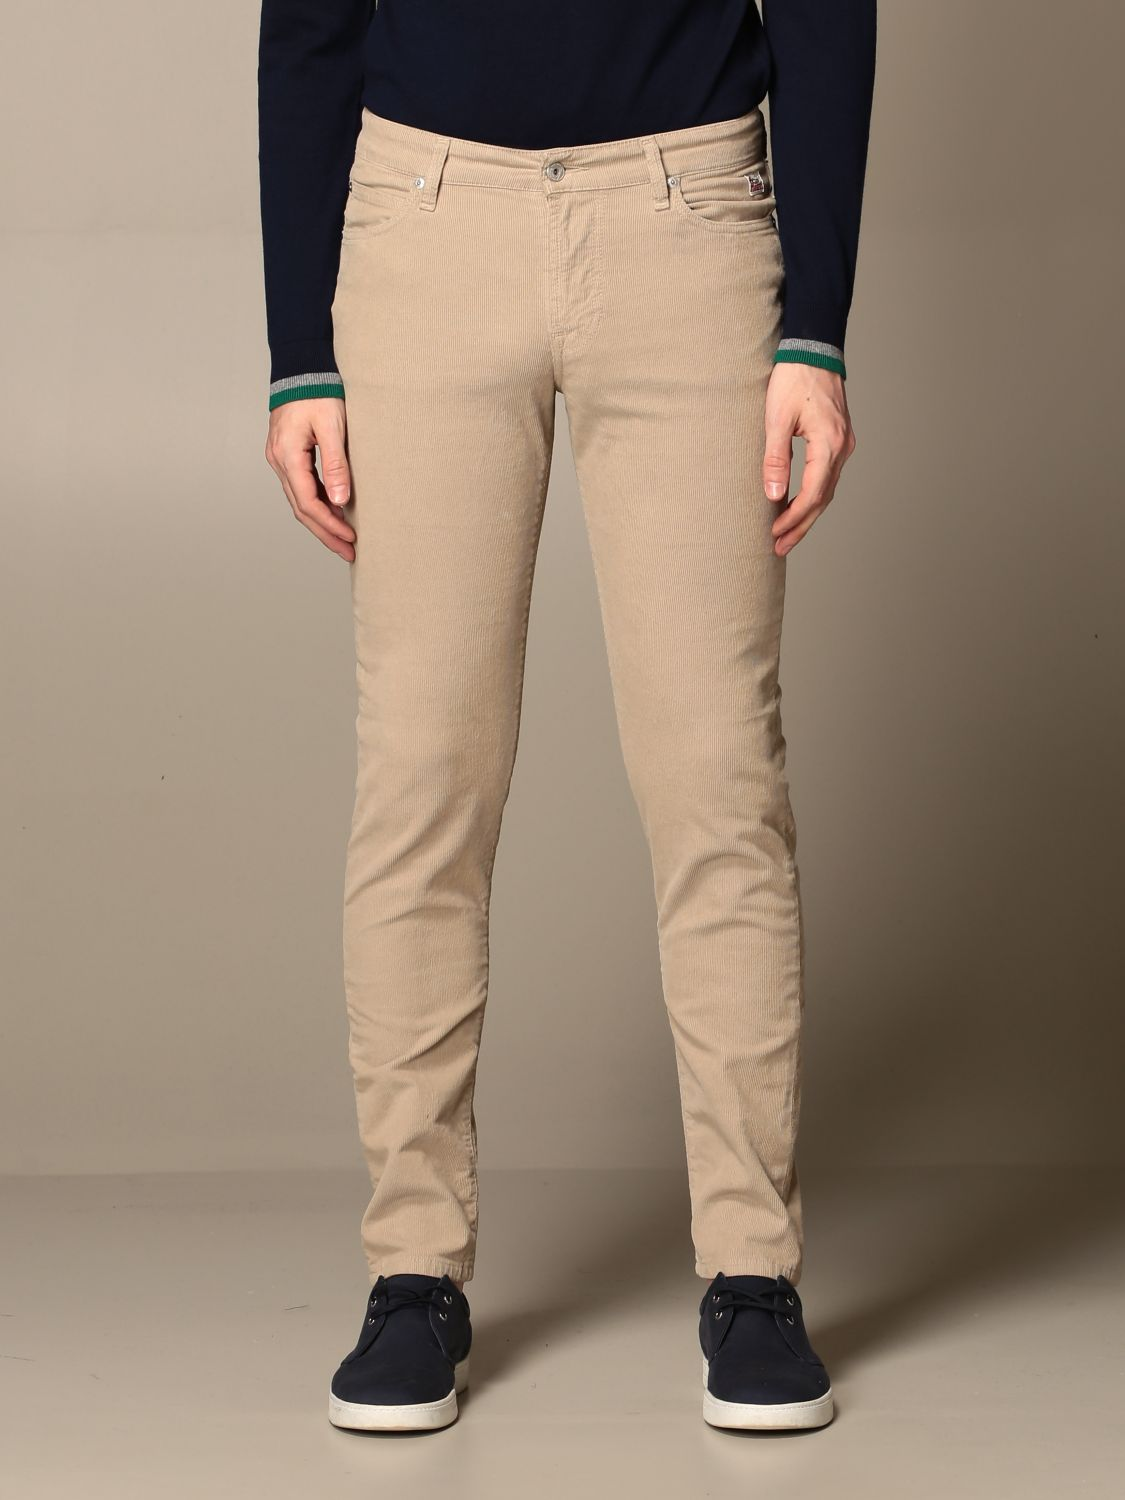 Pants Roy Rogers: Roy Rogers trousers with 5 pockets beige 1